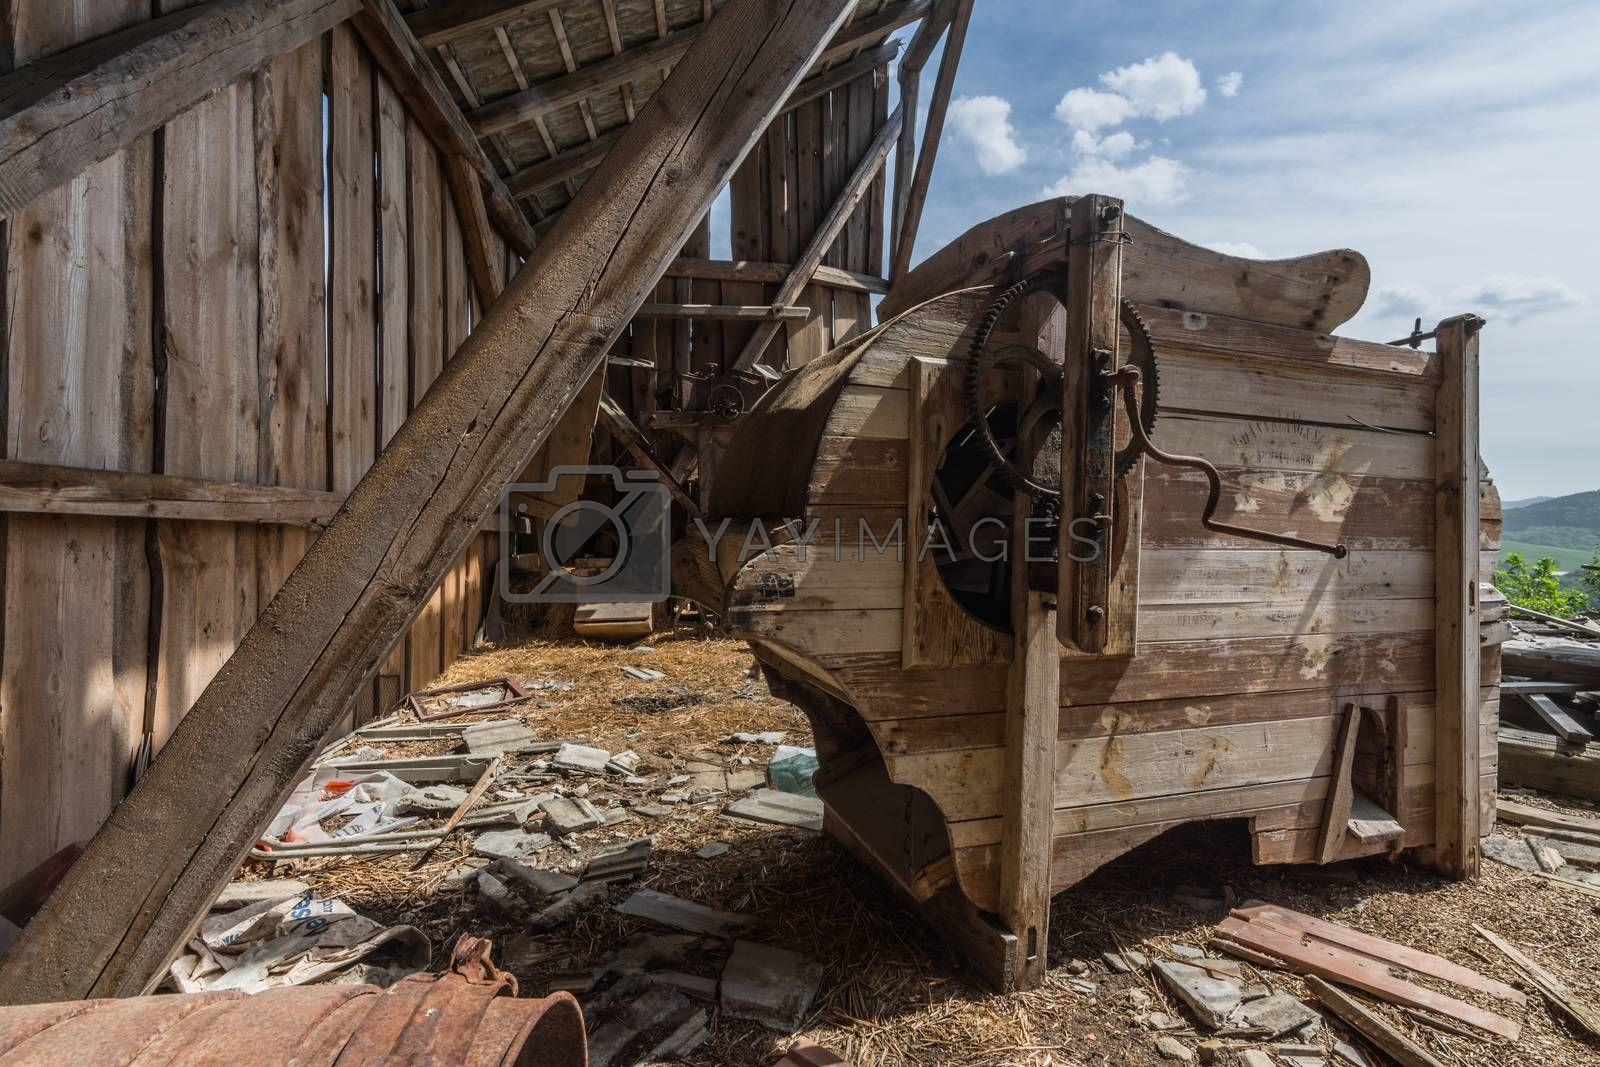 Old wooden thresher in an attic of an abandoned house